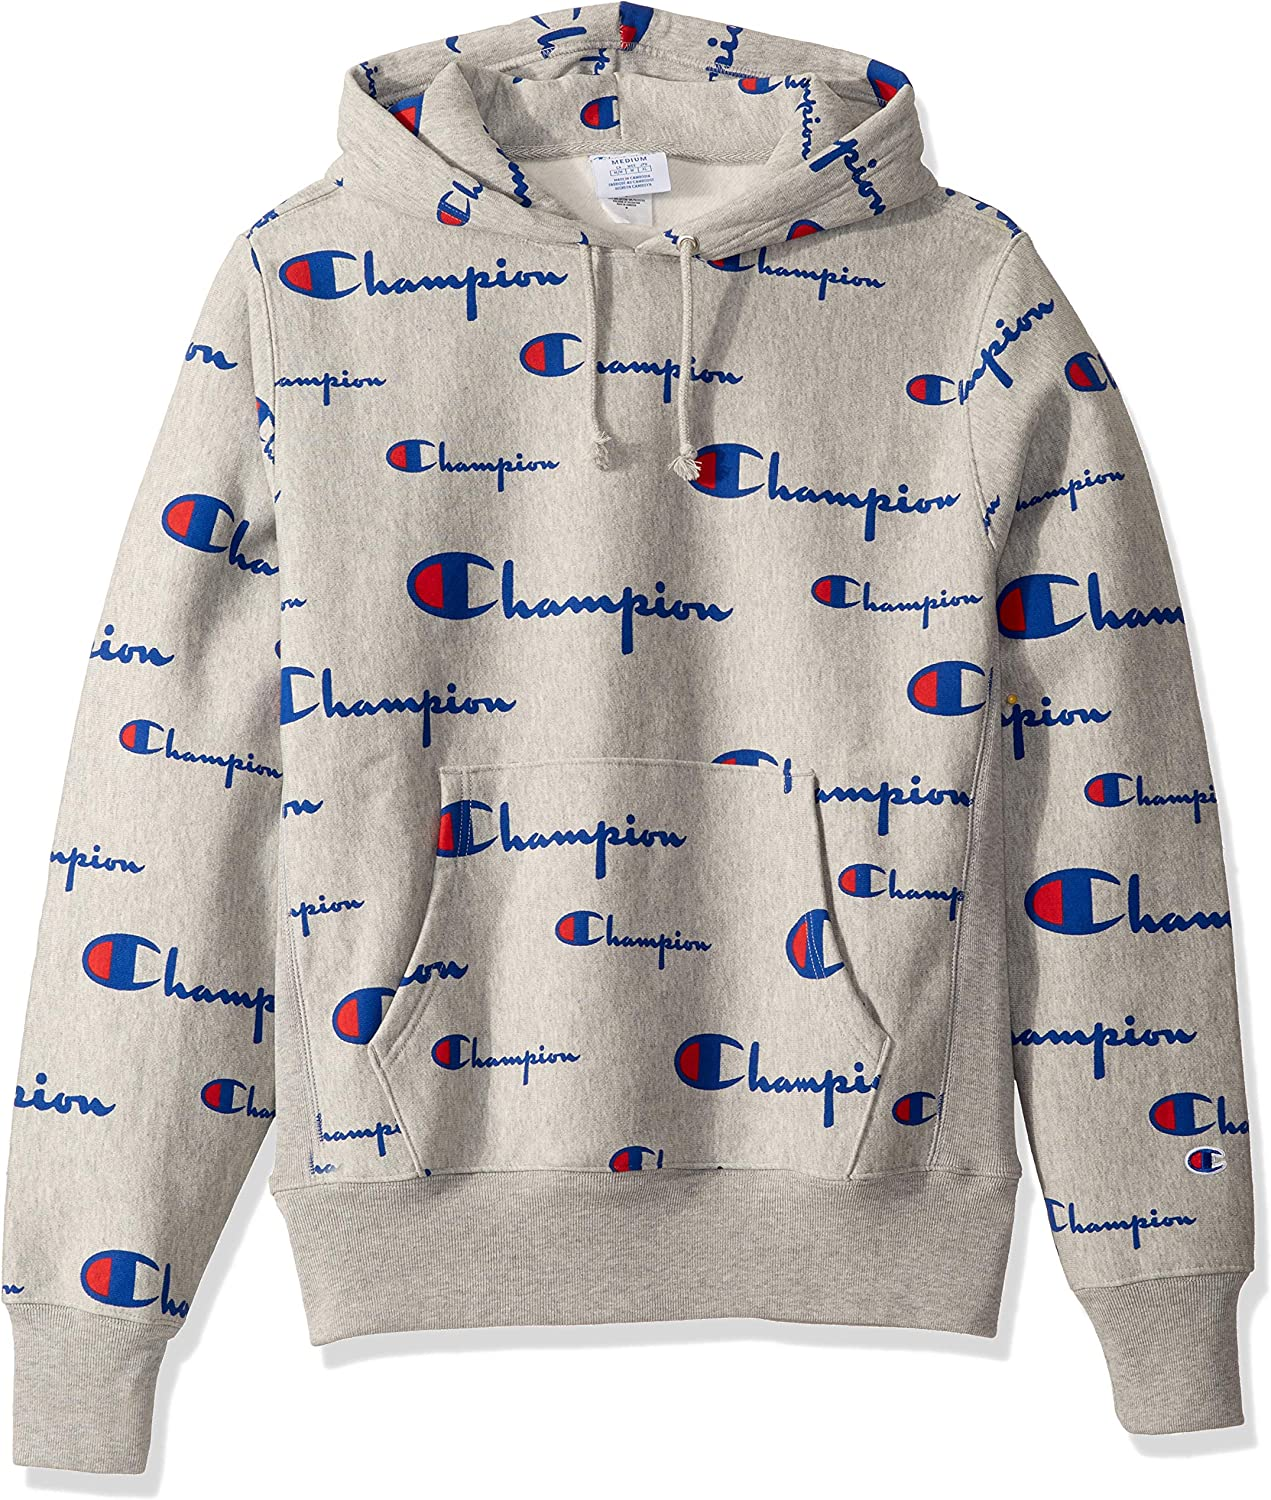 champion all over print hoodie